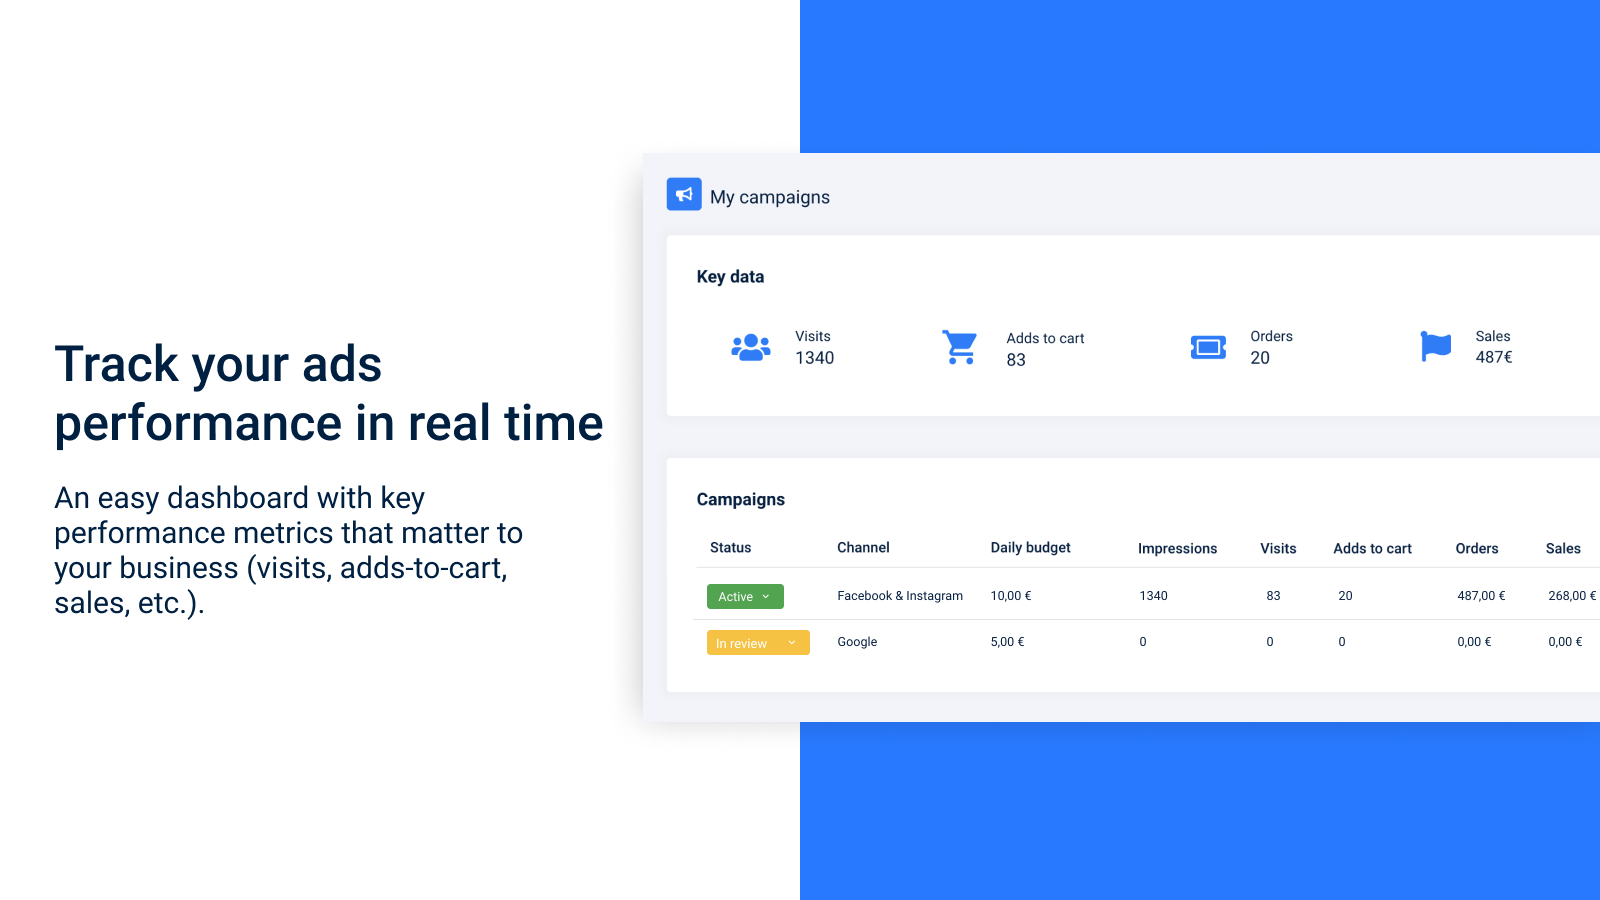 Track your ads performance in real time